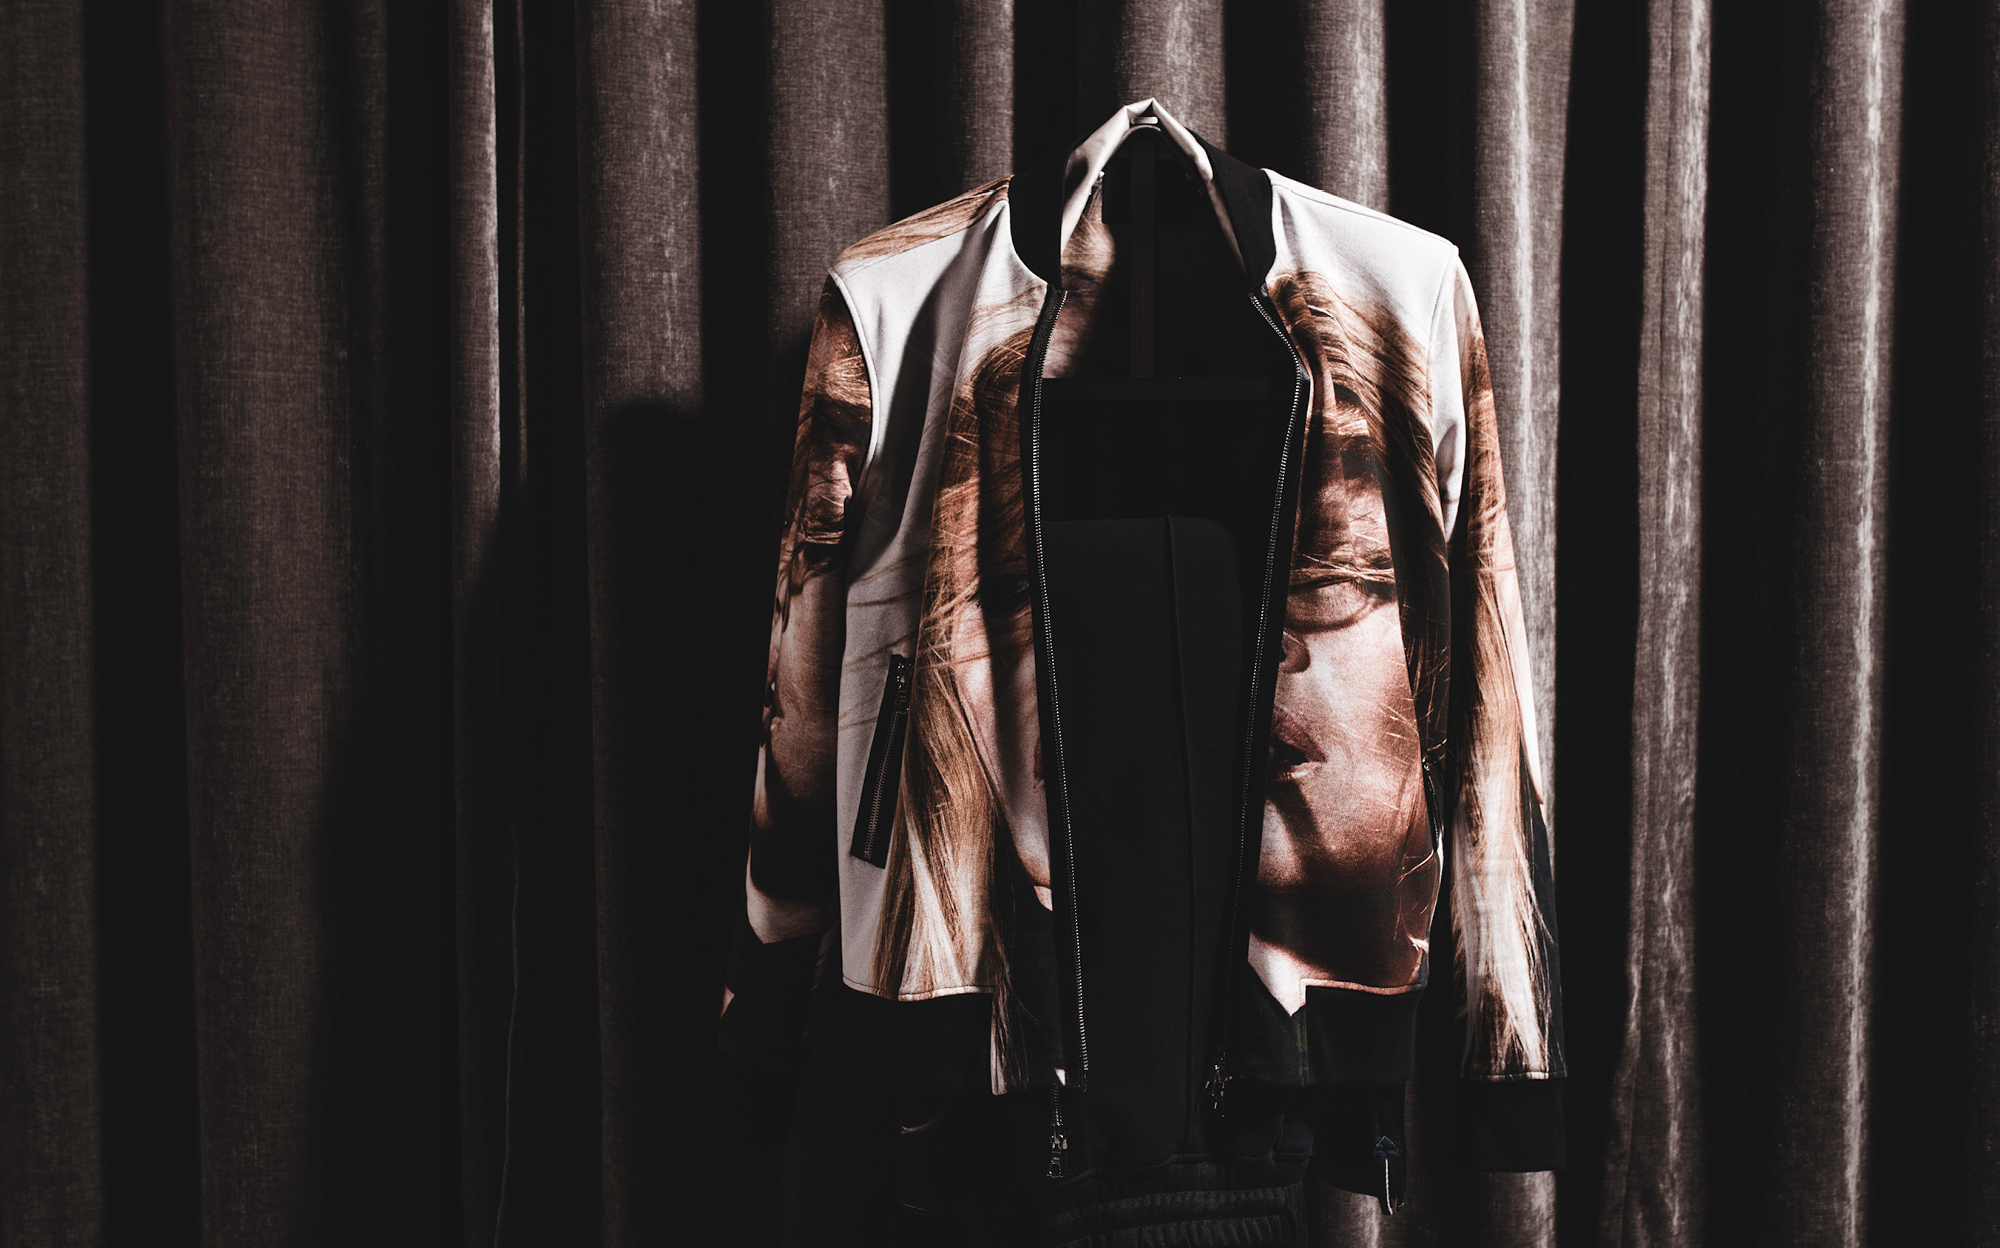 Limitato makes wearable art such as this bomber with Terry O'Neill photograph print